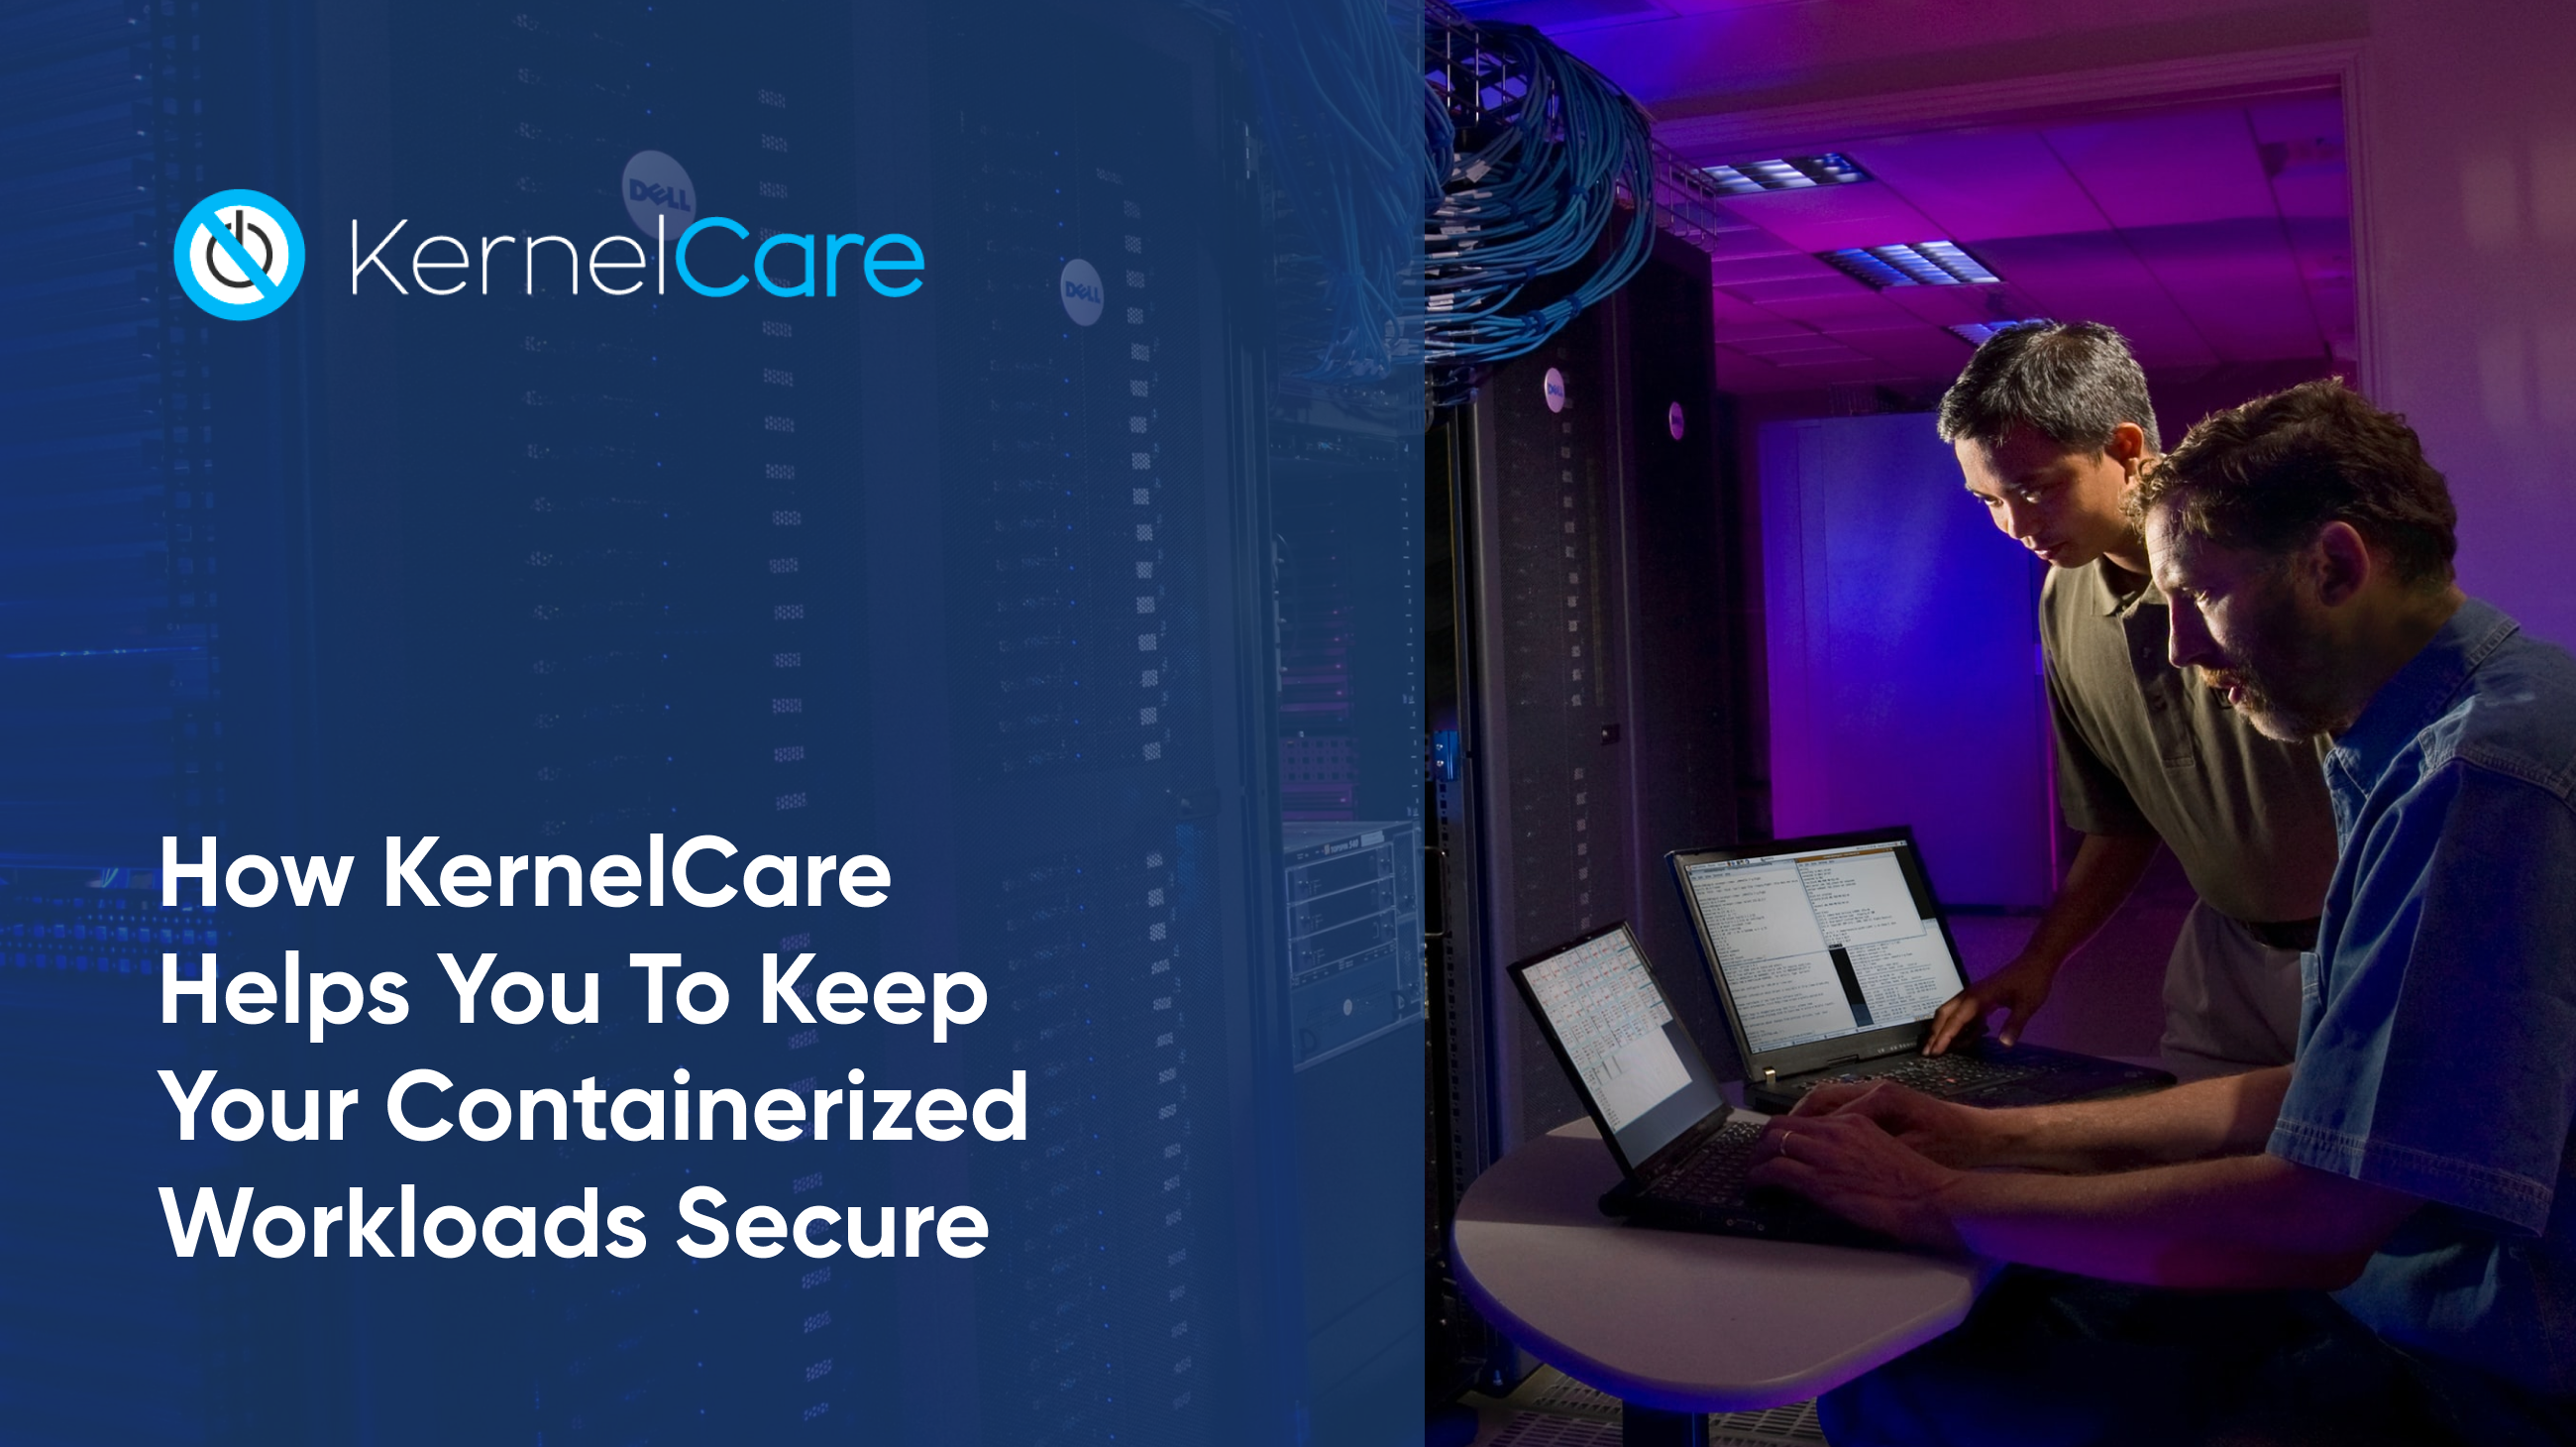 How KernelCare Helps You To Keep Your Containerized Workloads Secure